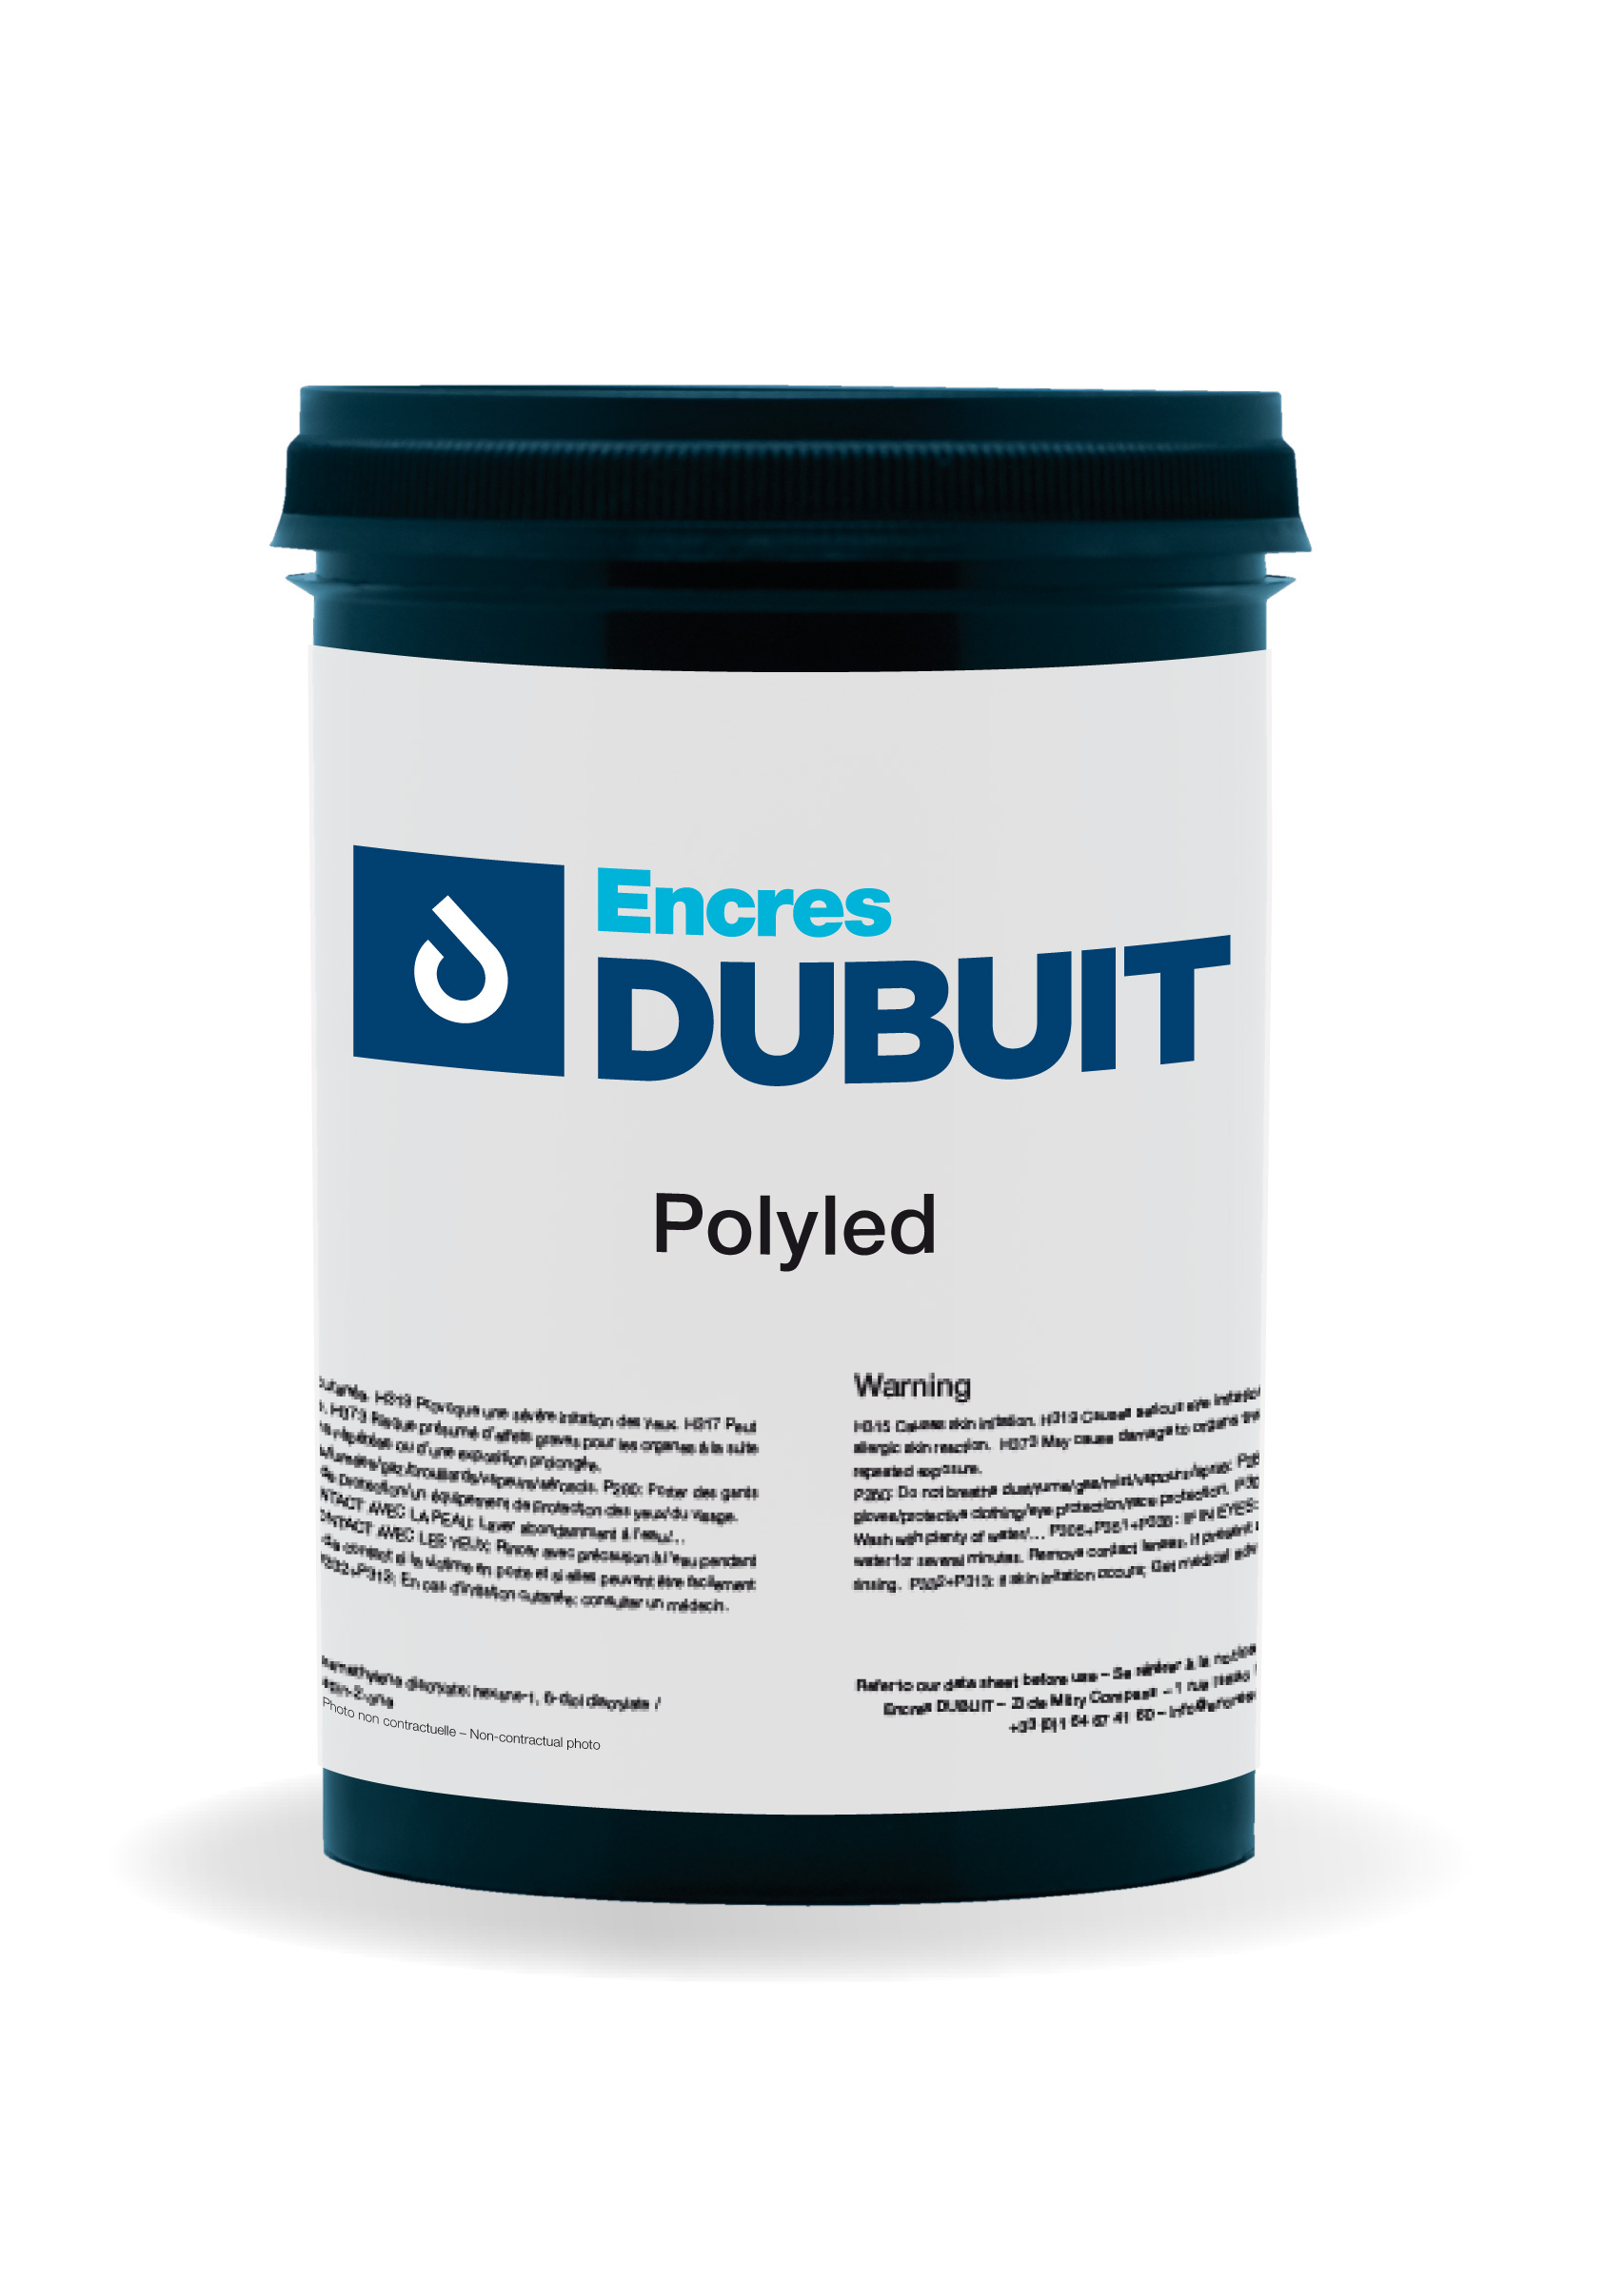 Serie Polyled Encres DUBUIT UV Screen Printing Ink